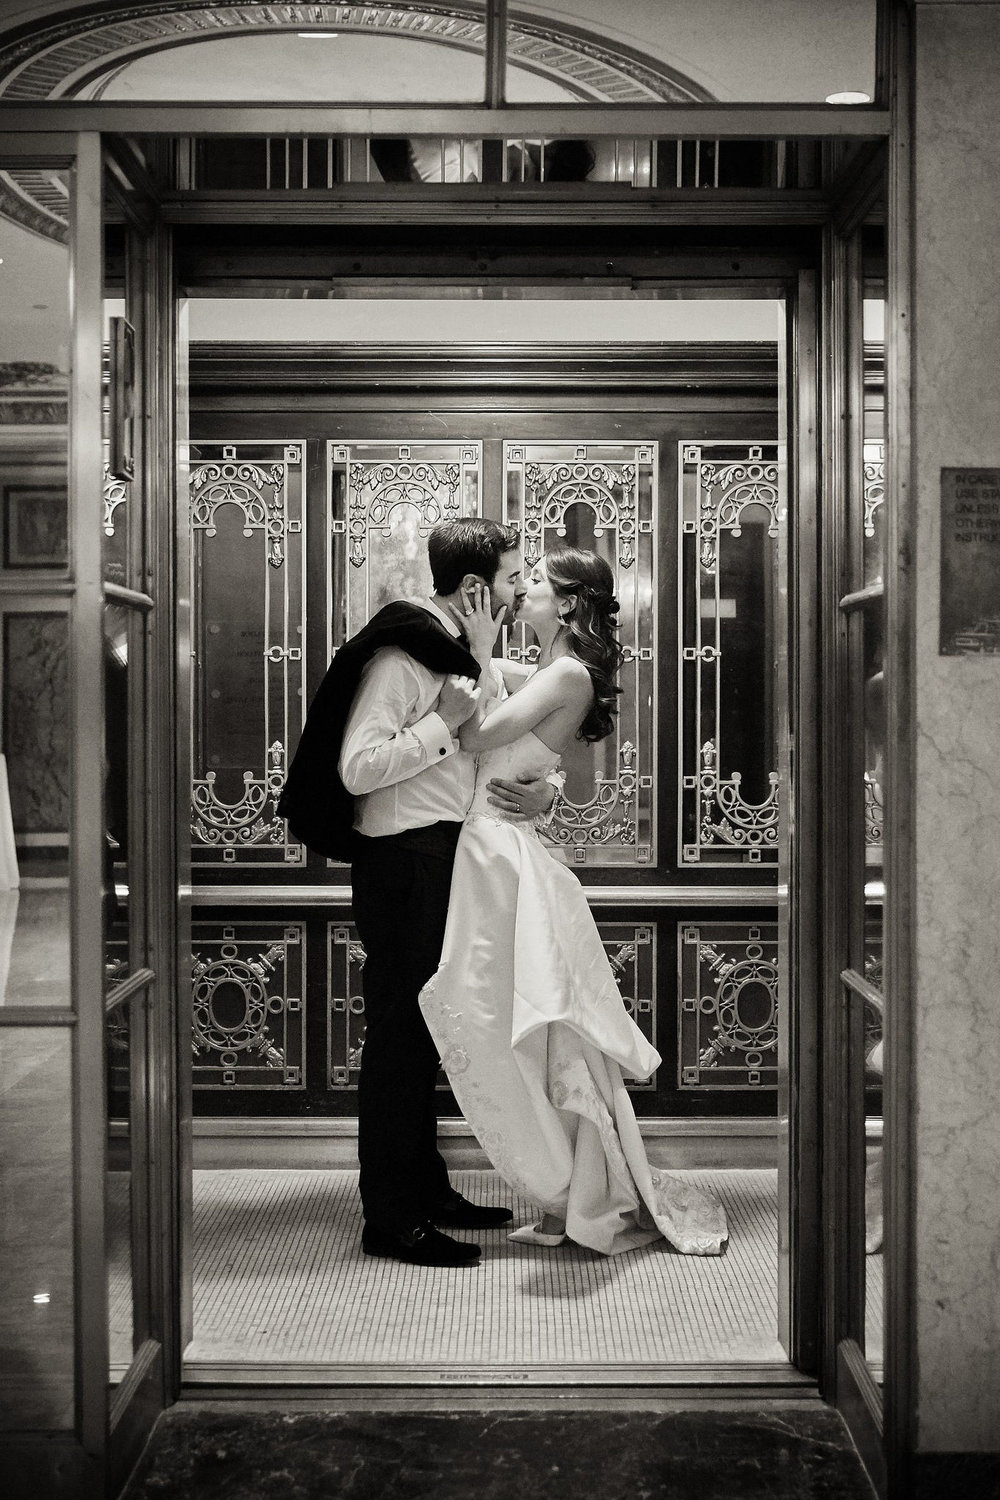 Final kiss of the night captured by Andrew Kelly for Christian Oth Studio